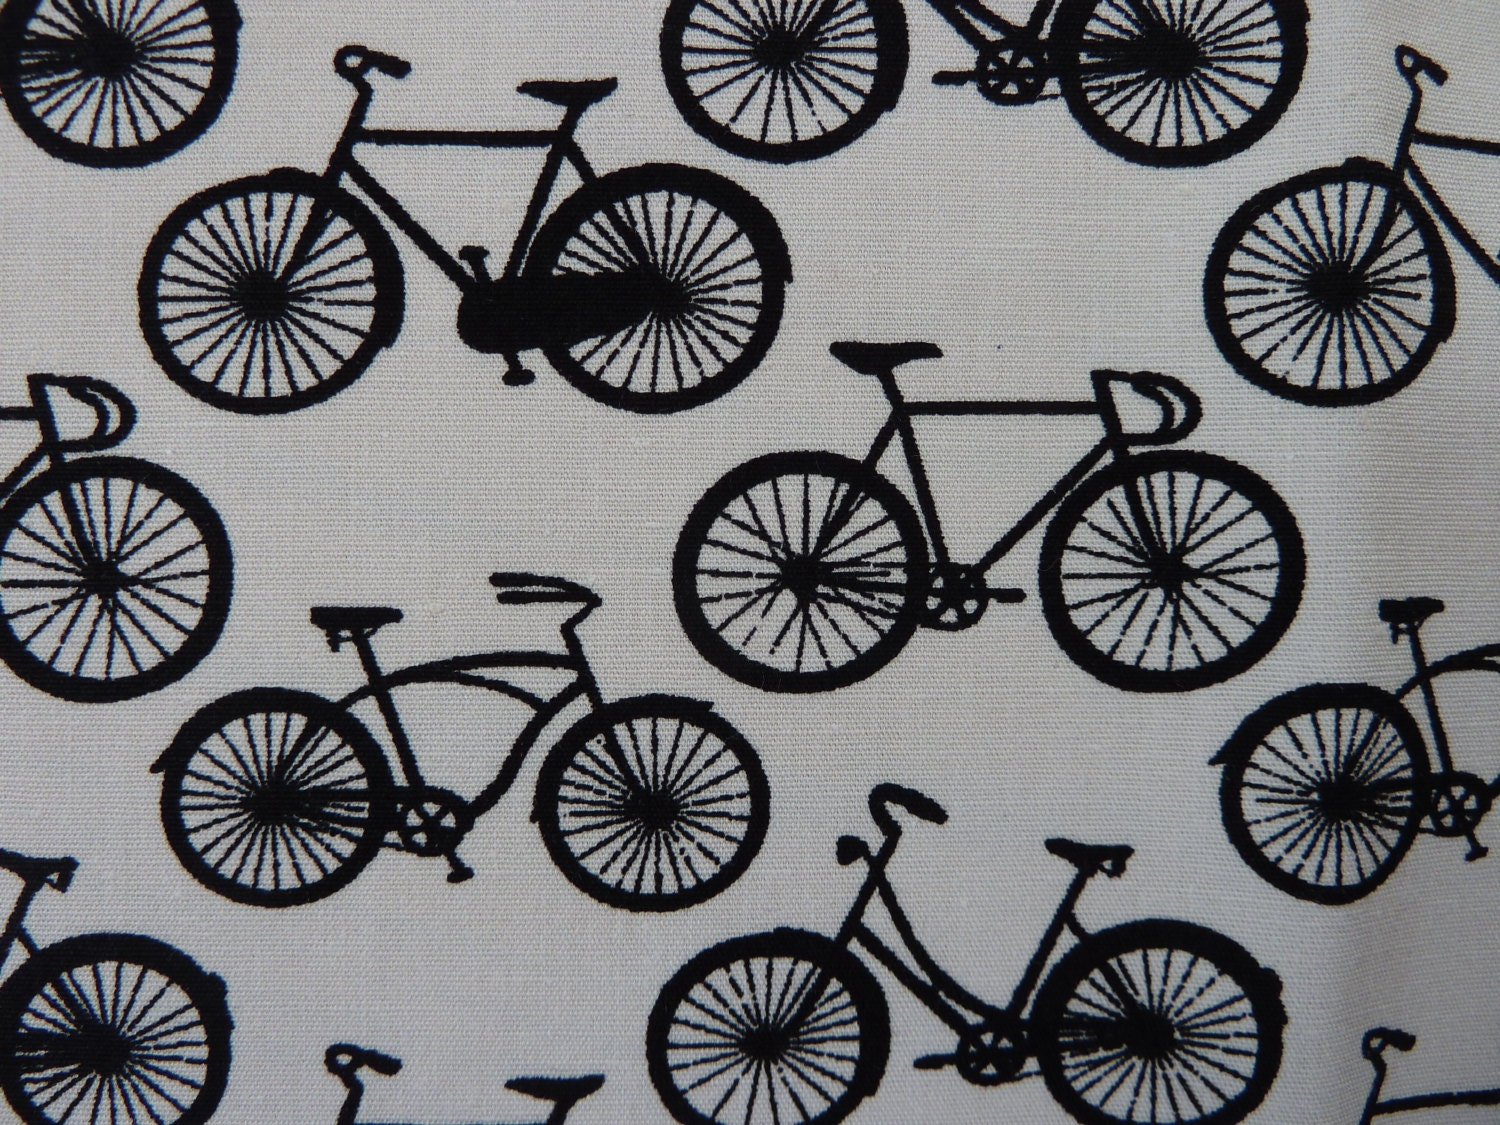 Black & White Bikes Fabric 100% Cotton Poplin Fun Bicycle